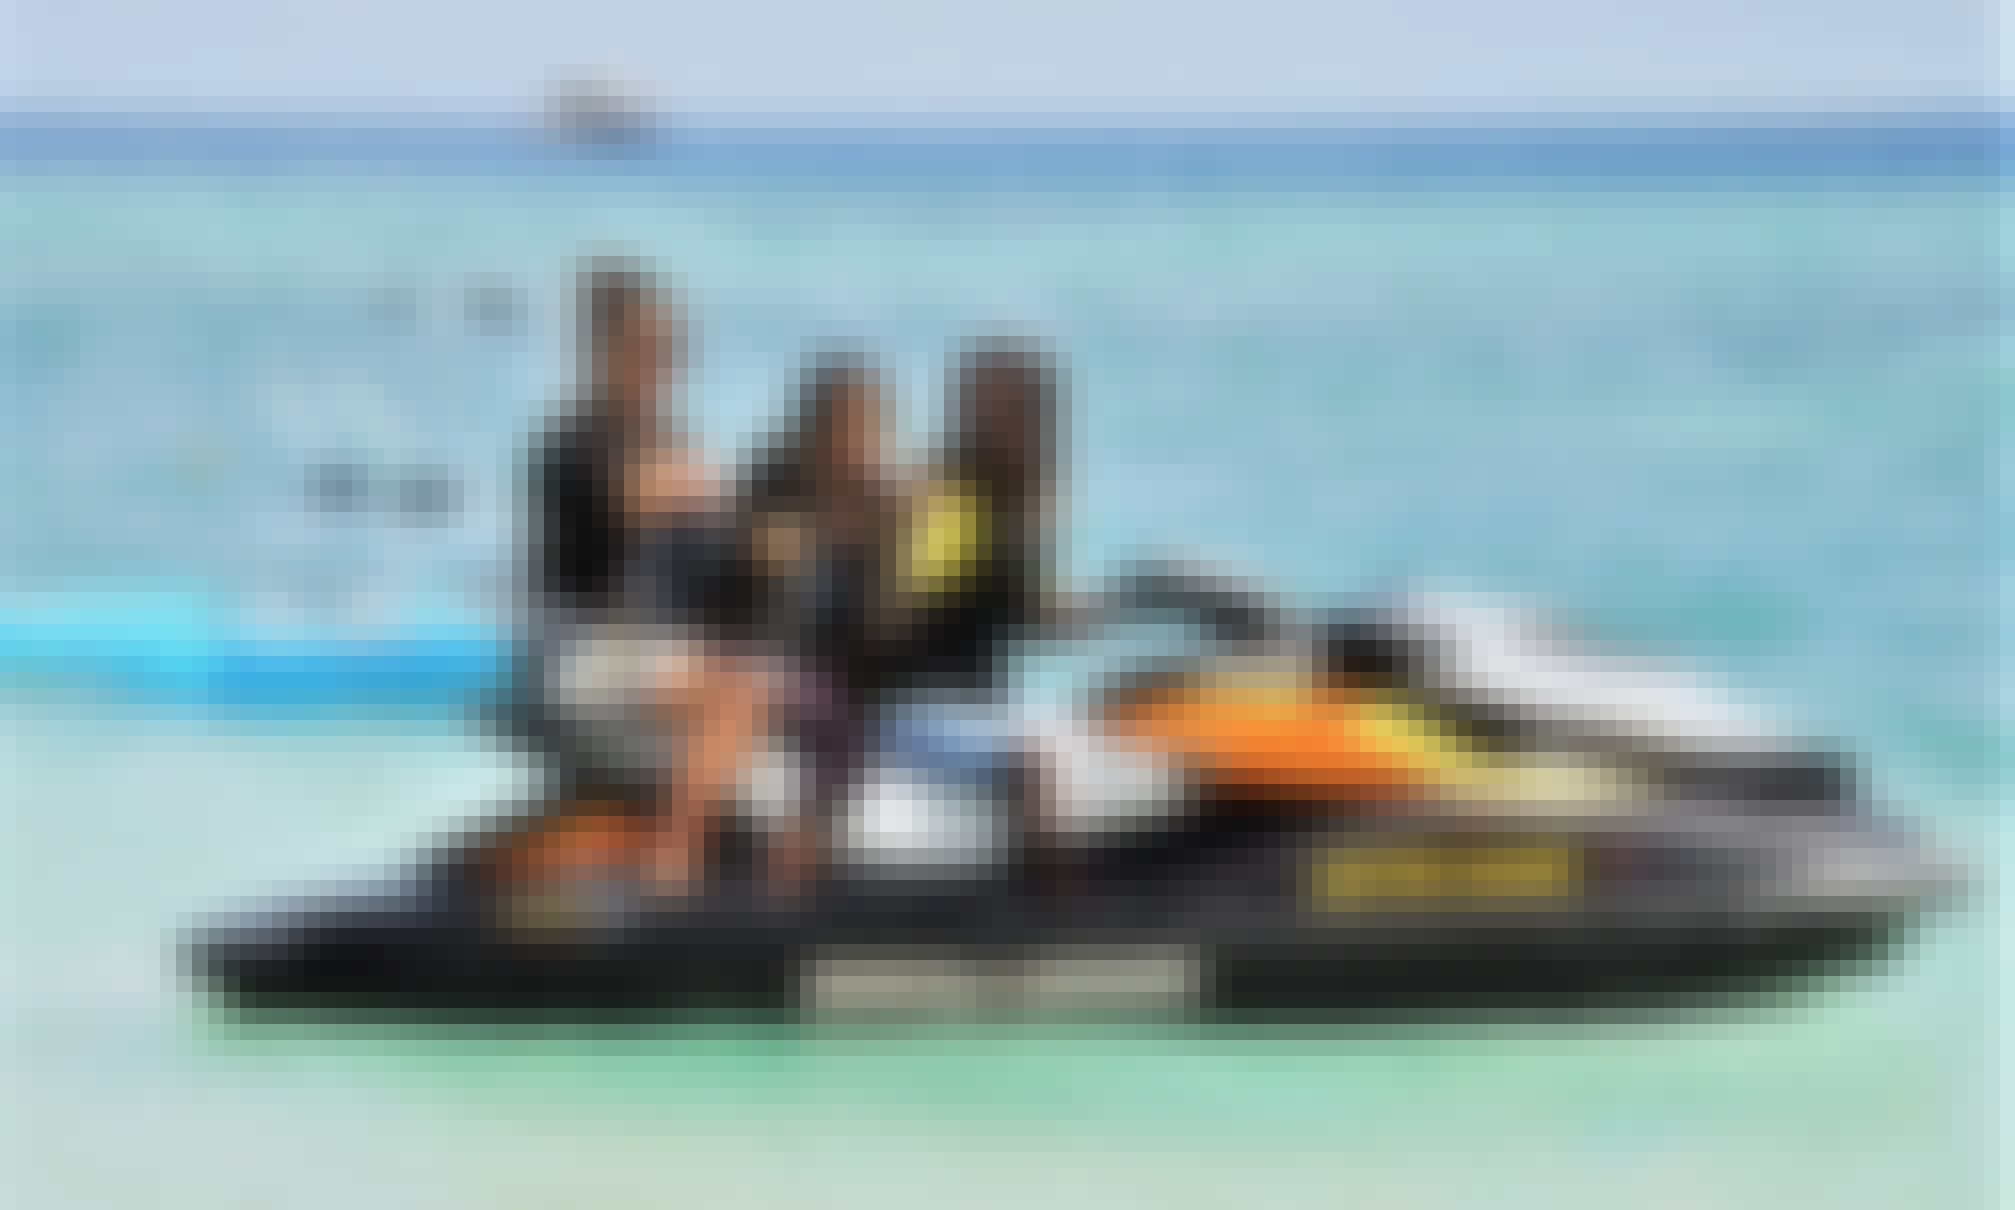 Rent a Jet Ski in Maafushi, Maldives